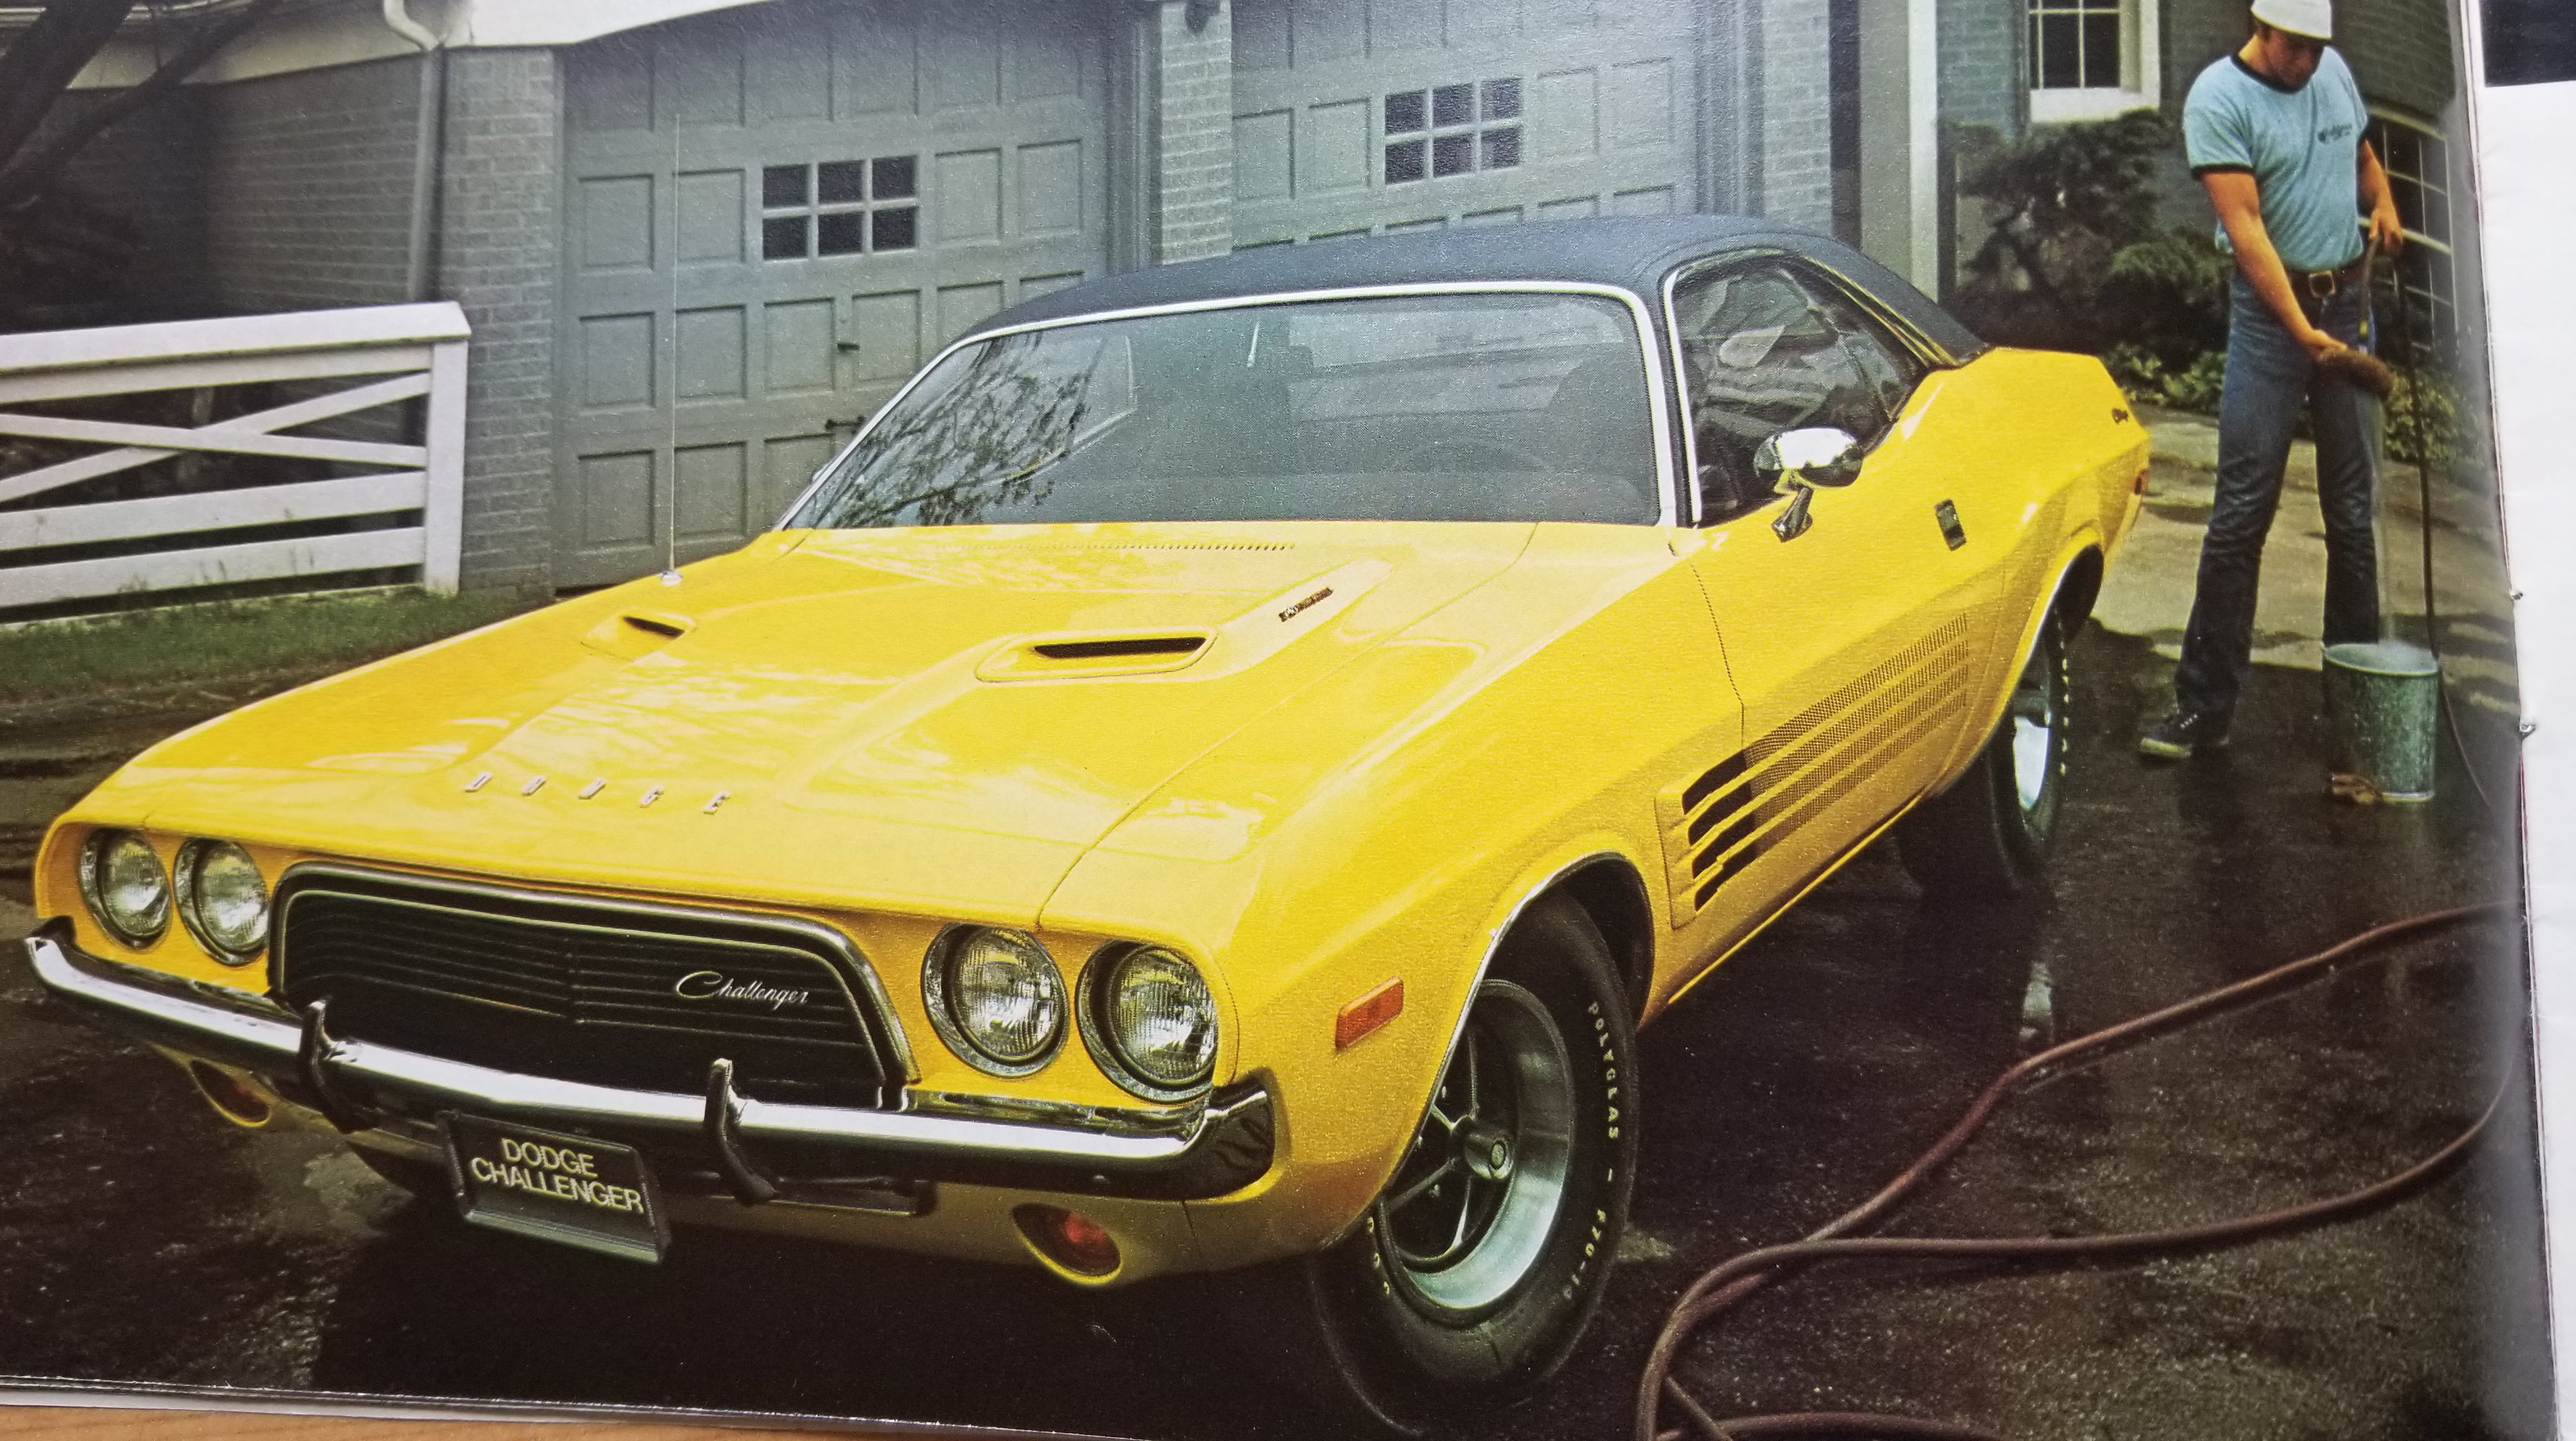 1972 Dodge Challenger Rallye in bright yellow